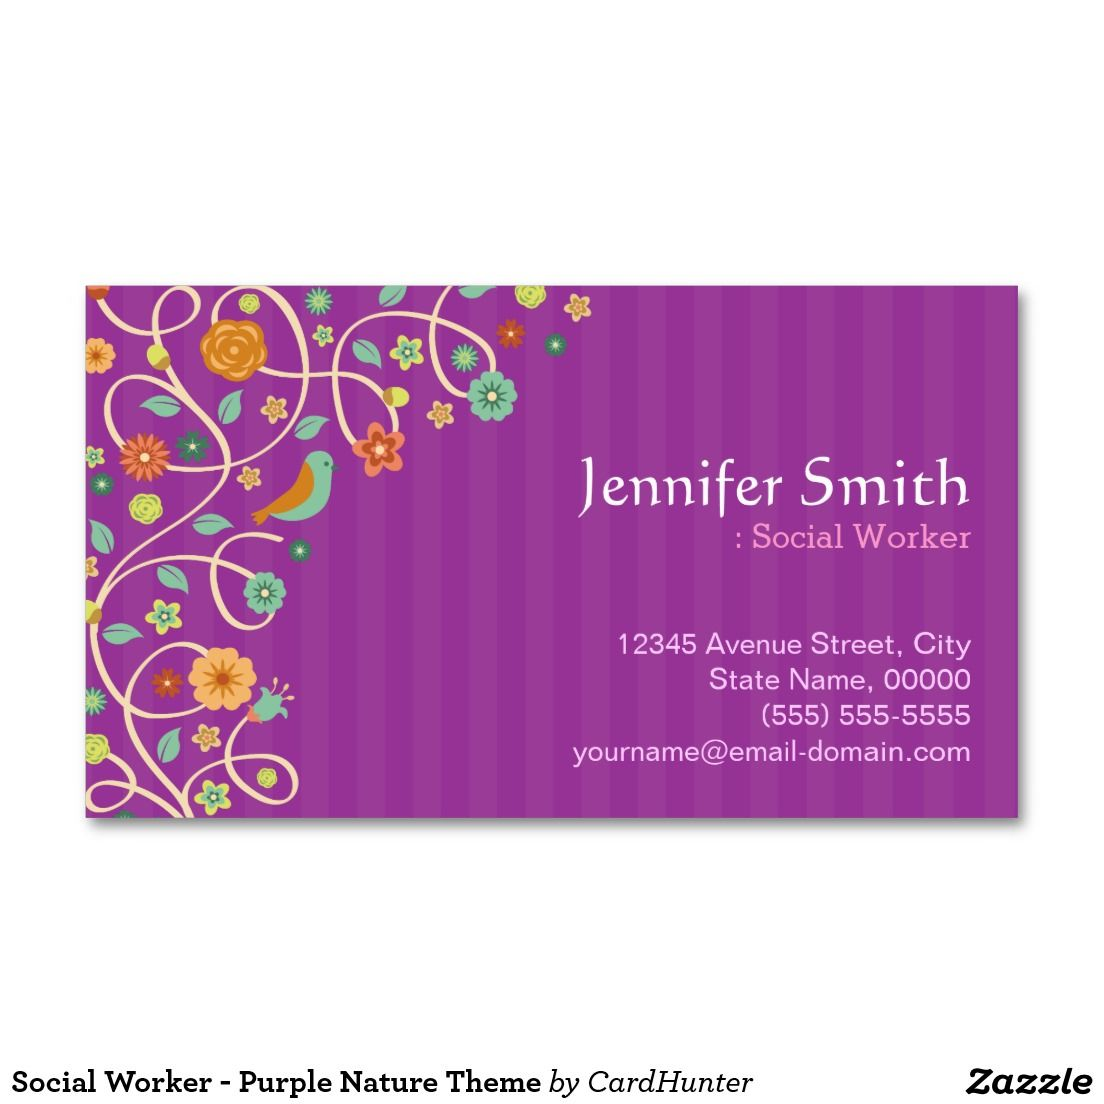 Social Worker - Purple Nature Theme Business Card | Business cards ...